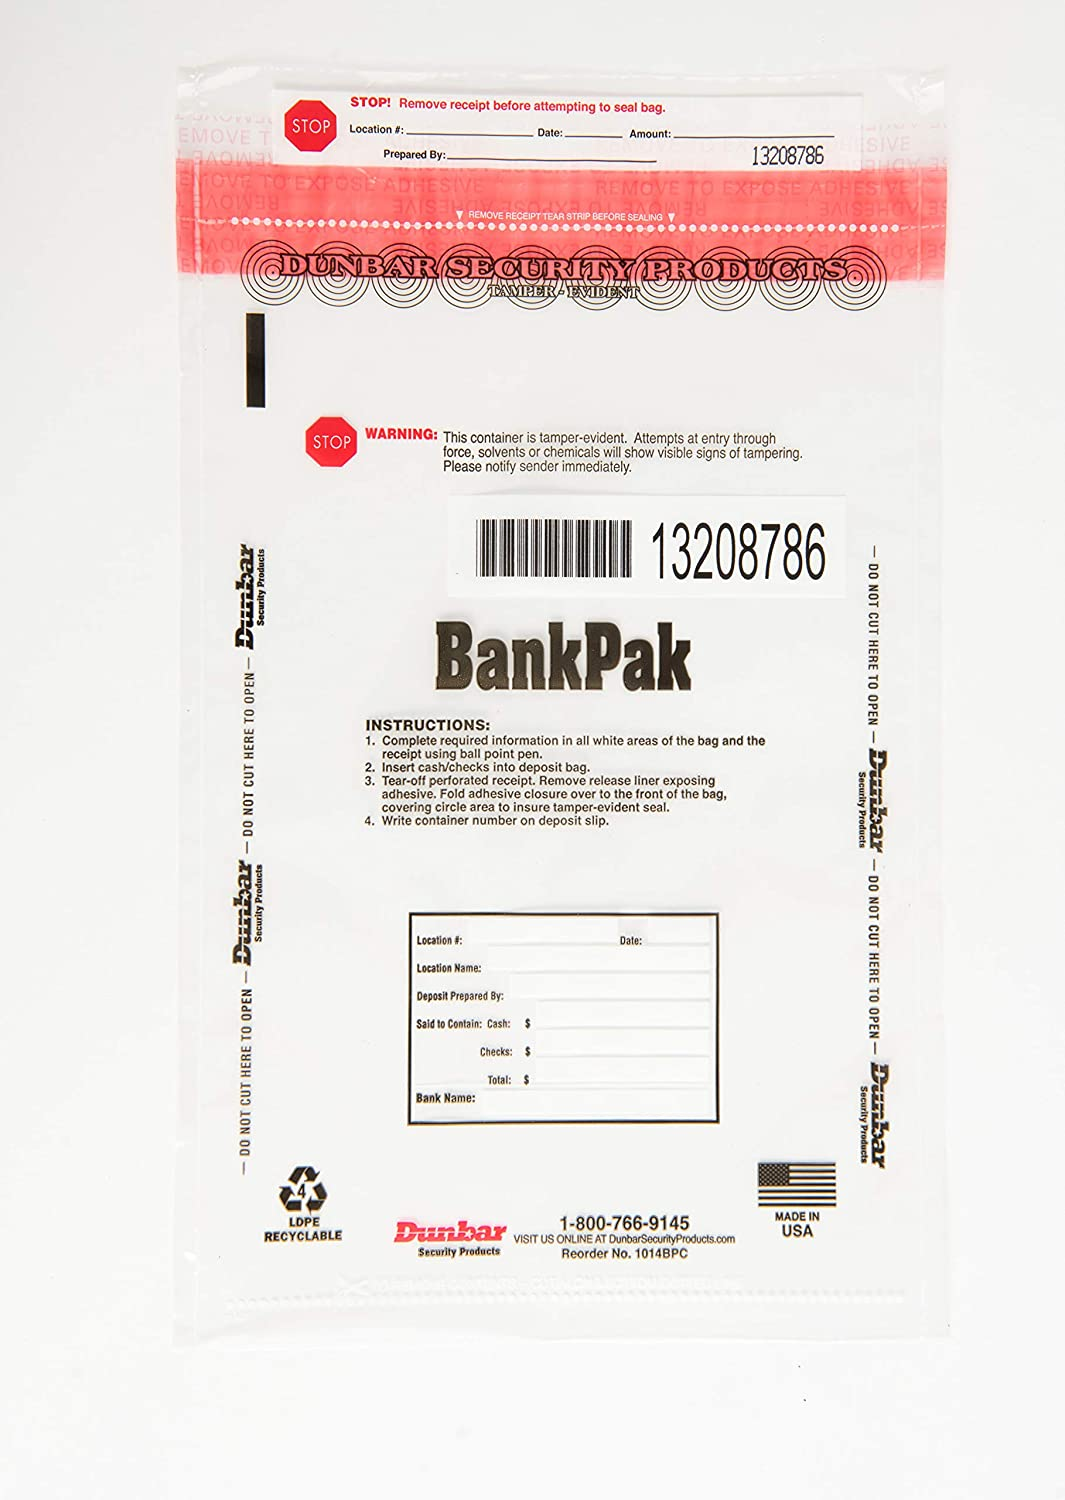 Clear, 8 x 11 x100 Dunbar Security Products BankPak Deposit Bags